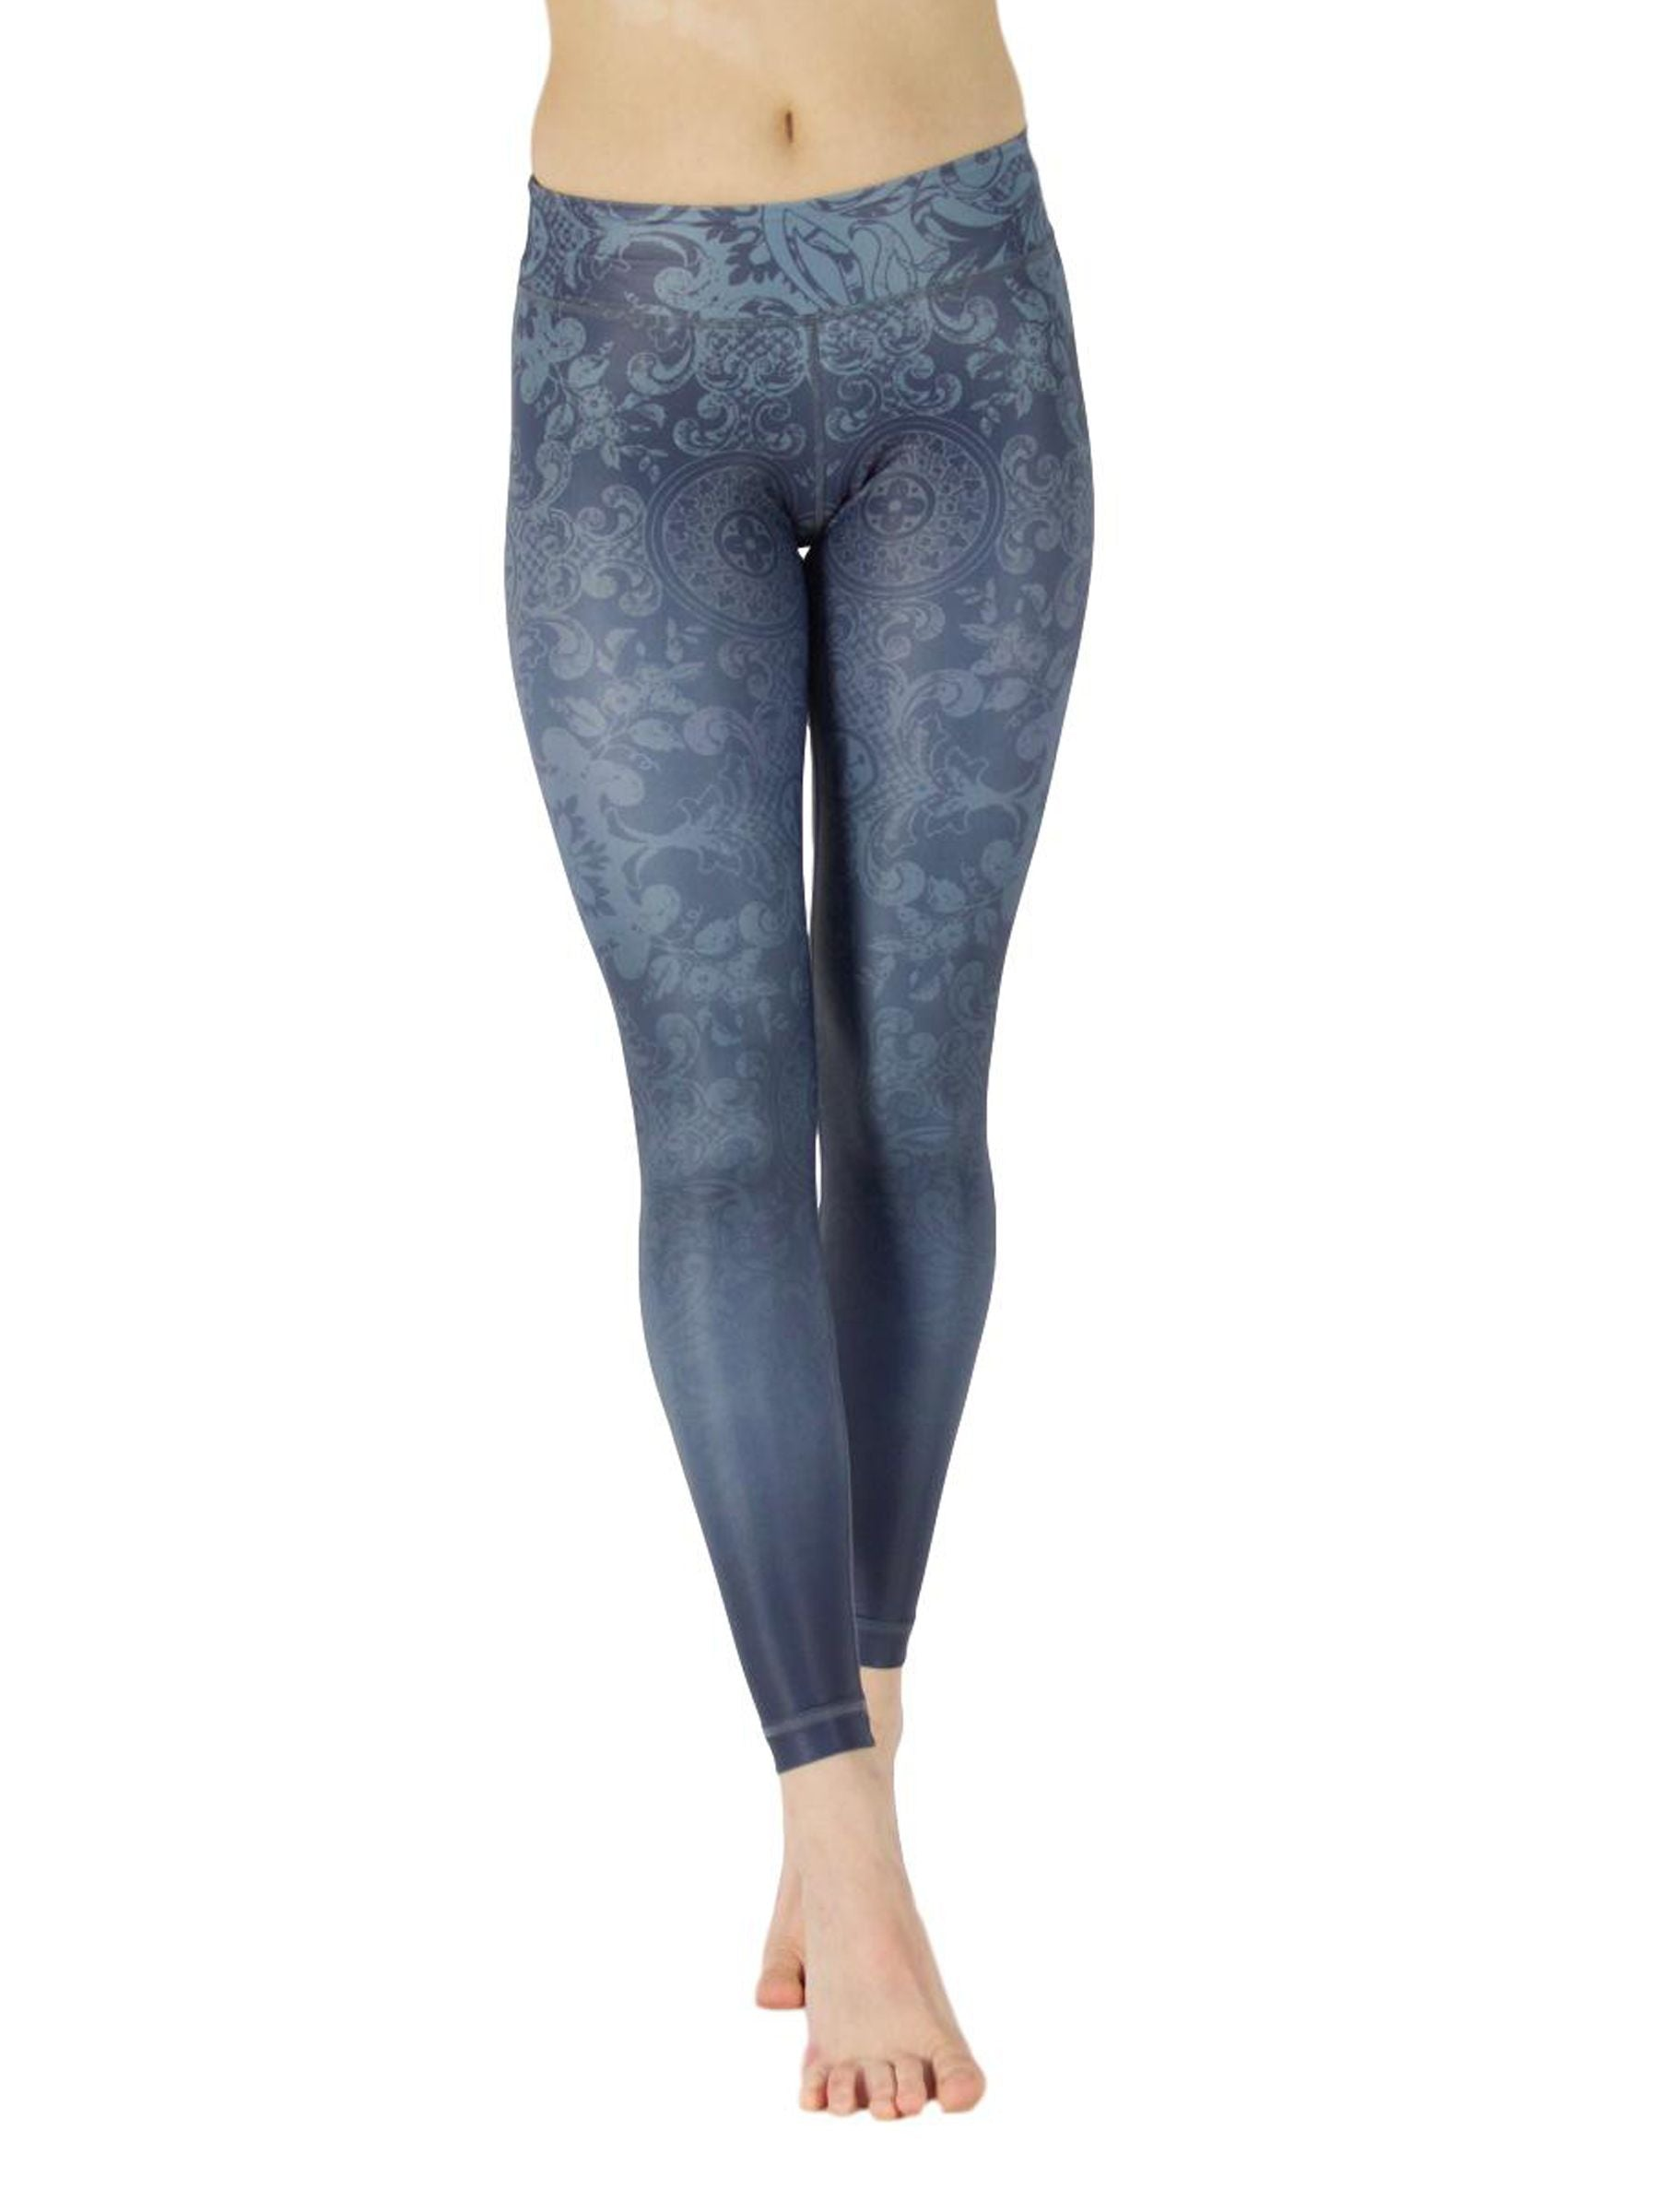 Holly Golightly by Niyama - High Quality, Yoga Legging for Movement Artists.